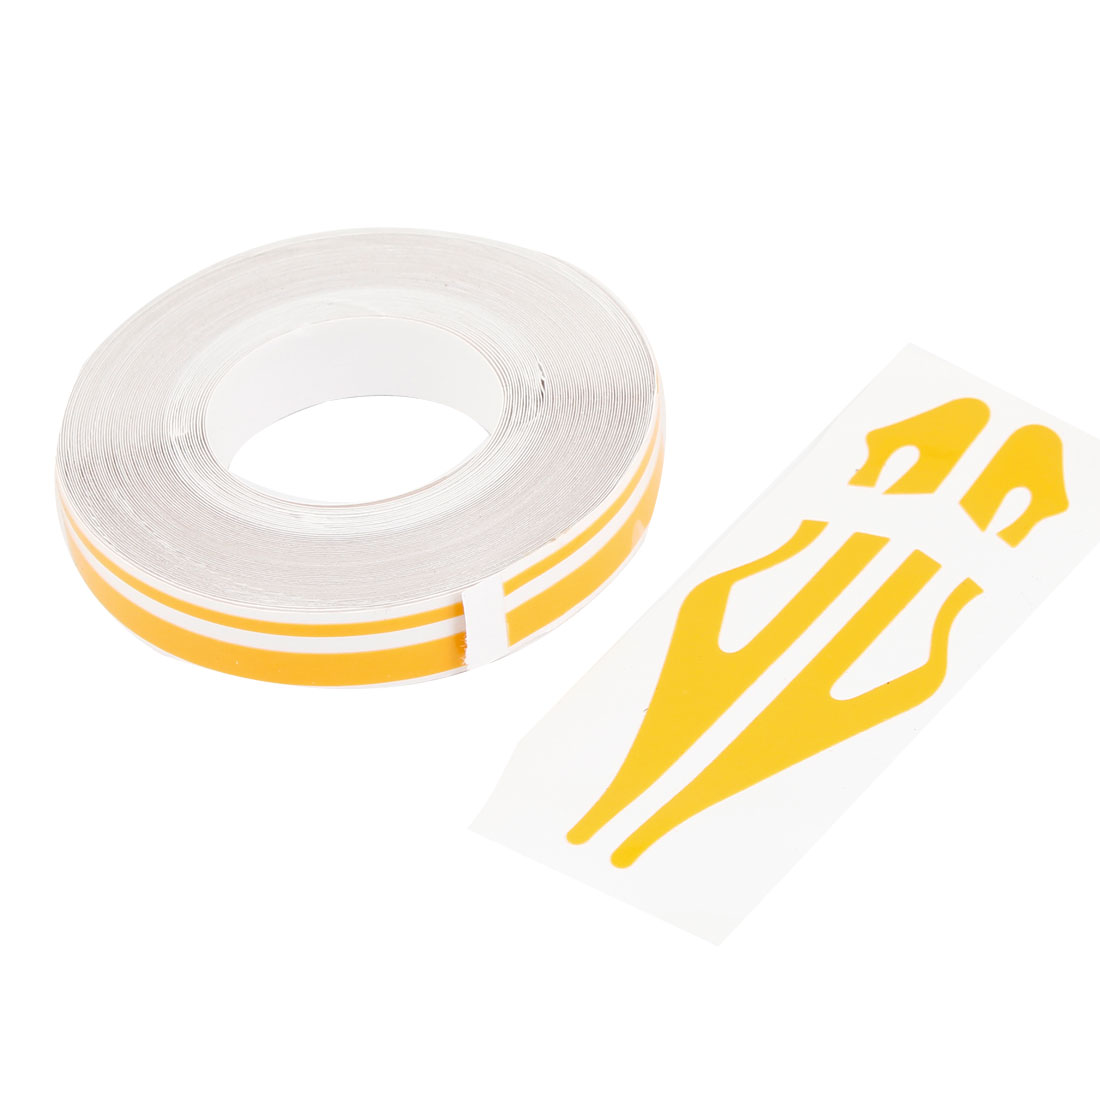 Automobile Car Decorative Yellow White Self Adhesive Stripe Tape 12mm x 9800mm